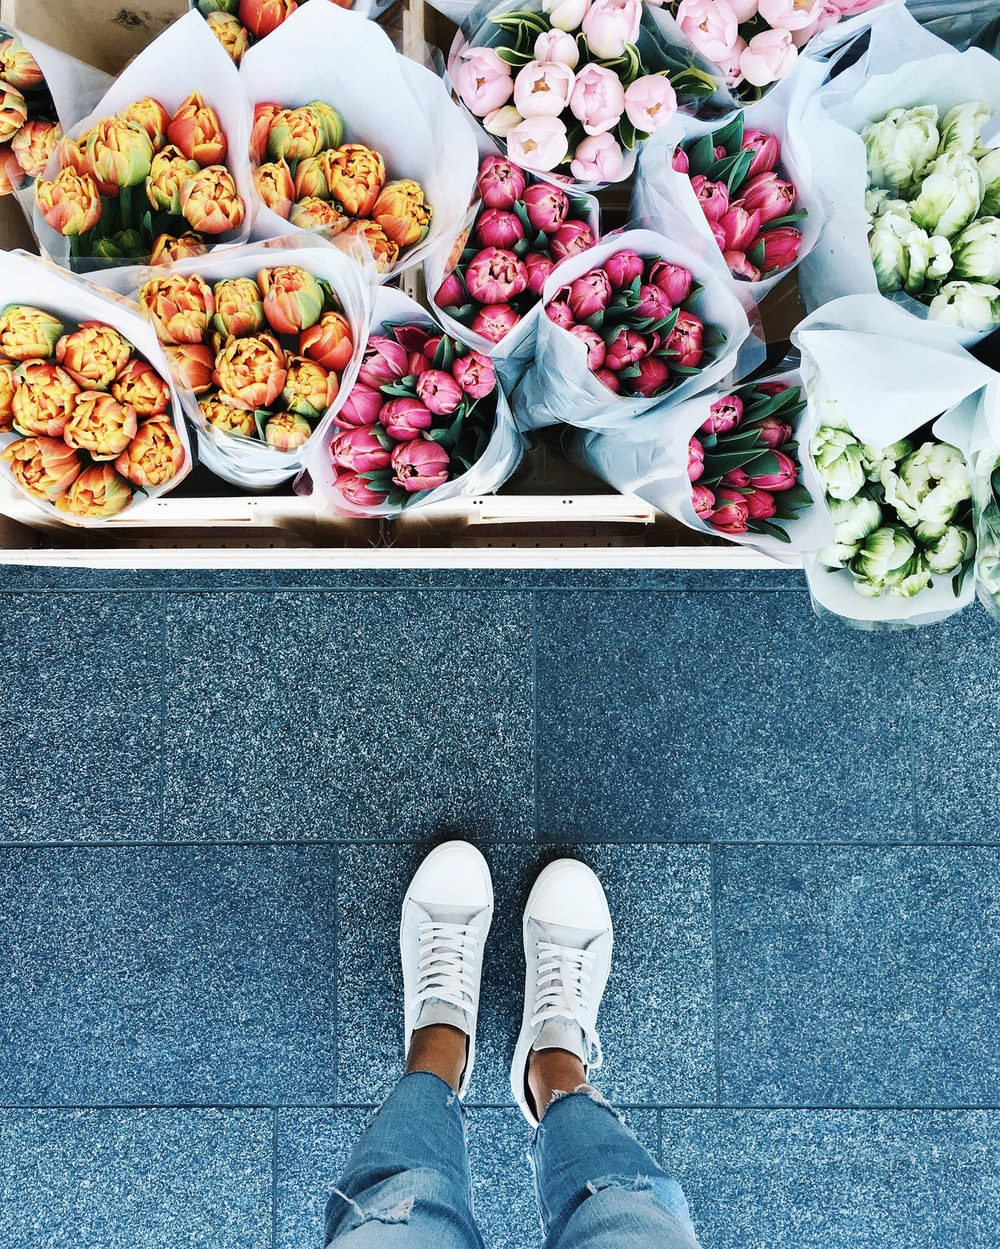 A person looking down at various flower bouquets.